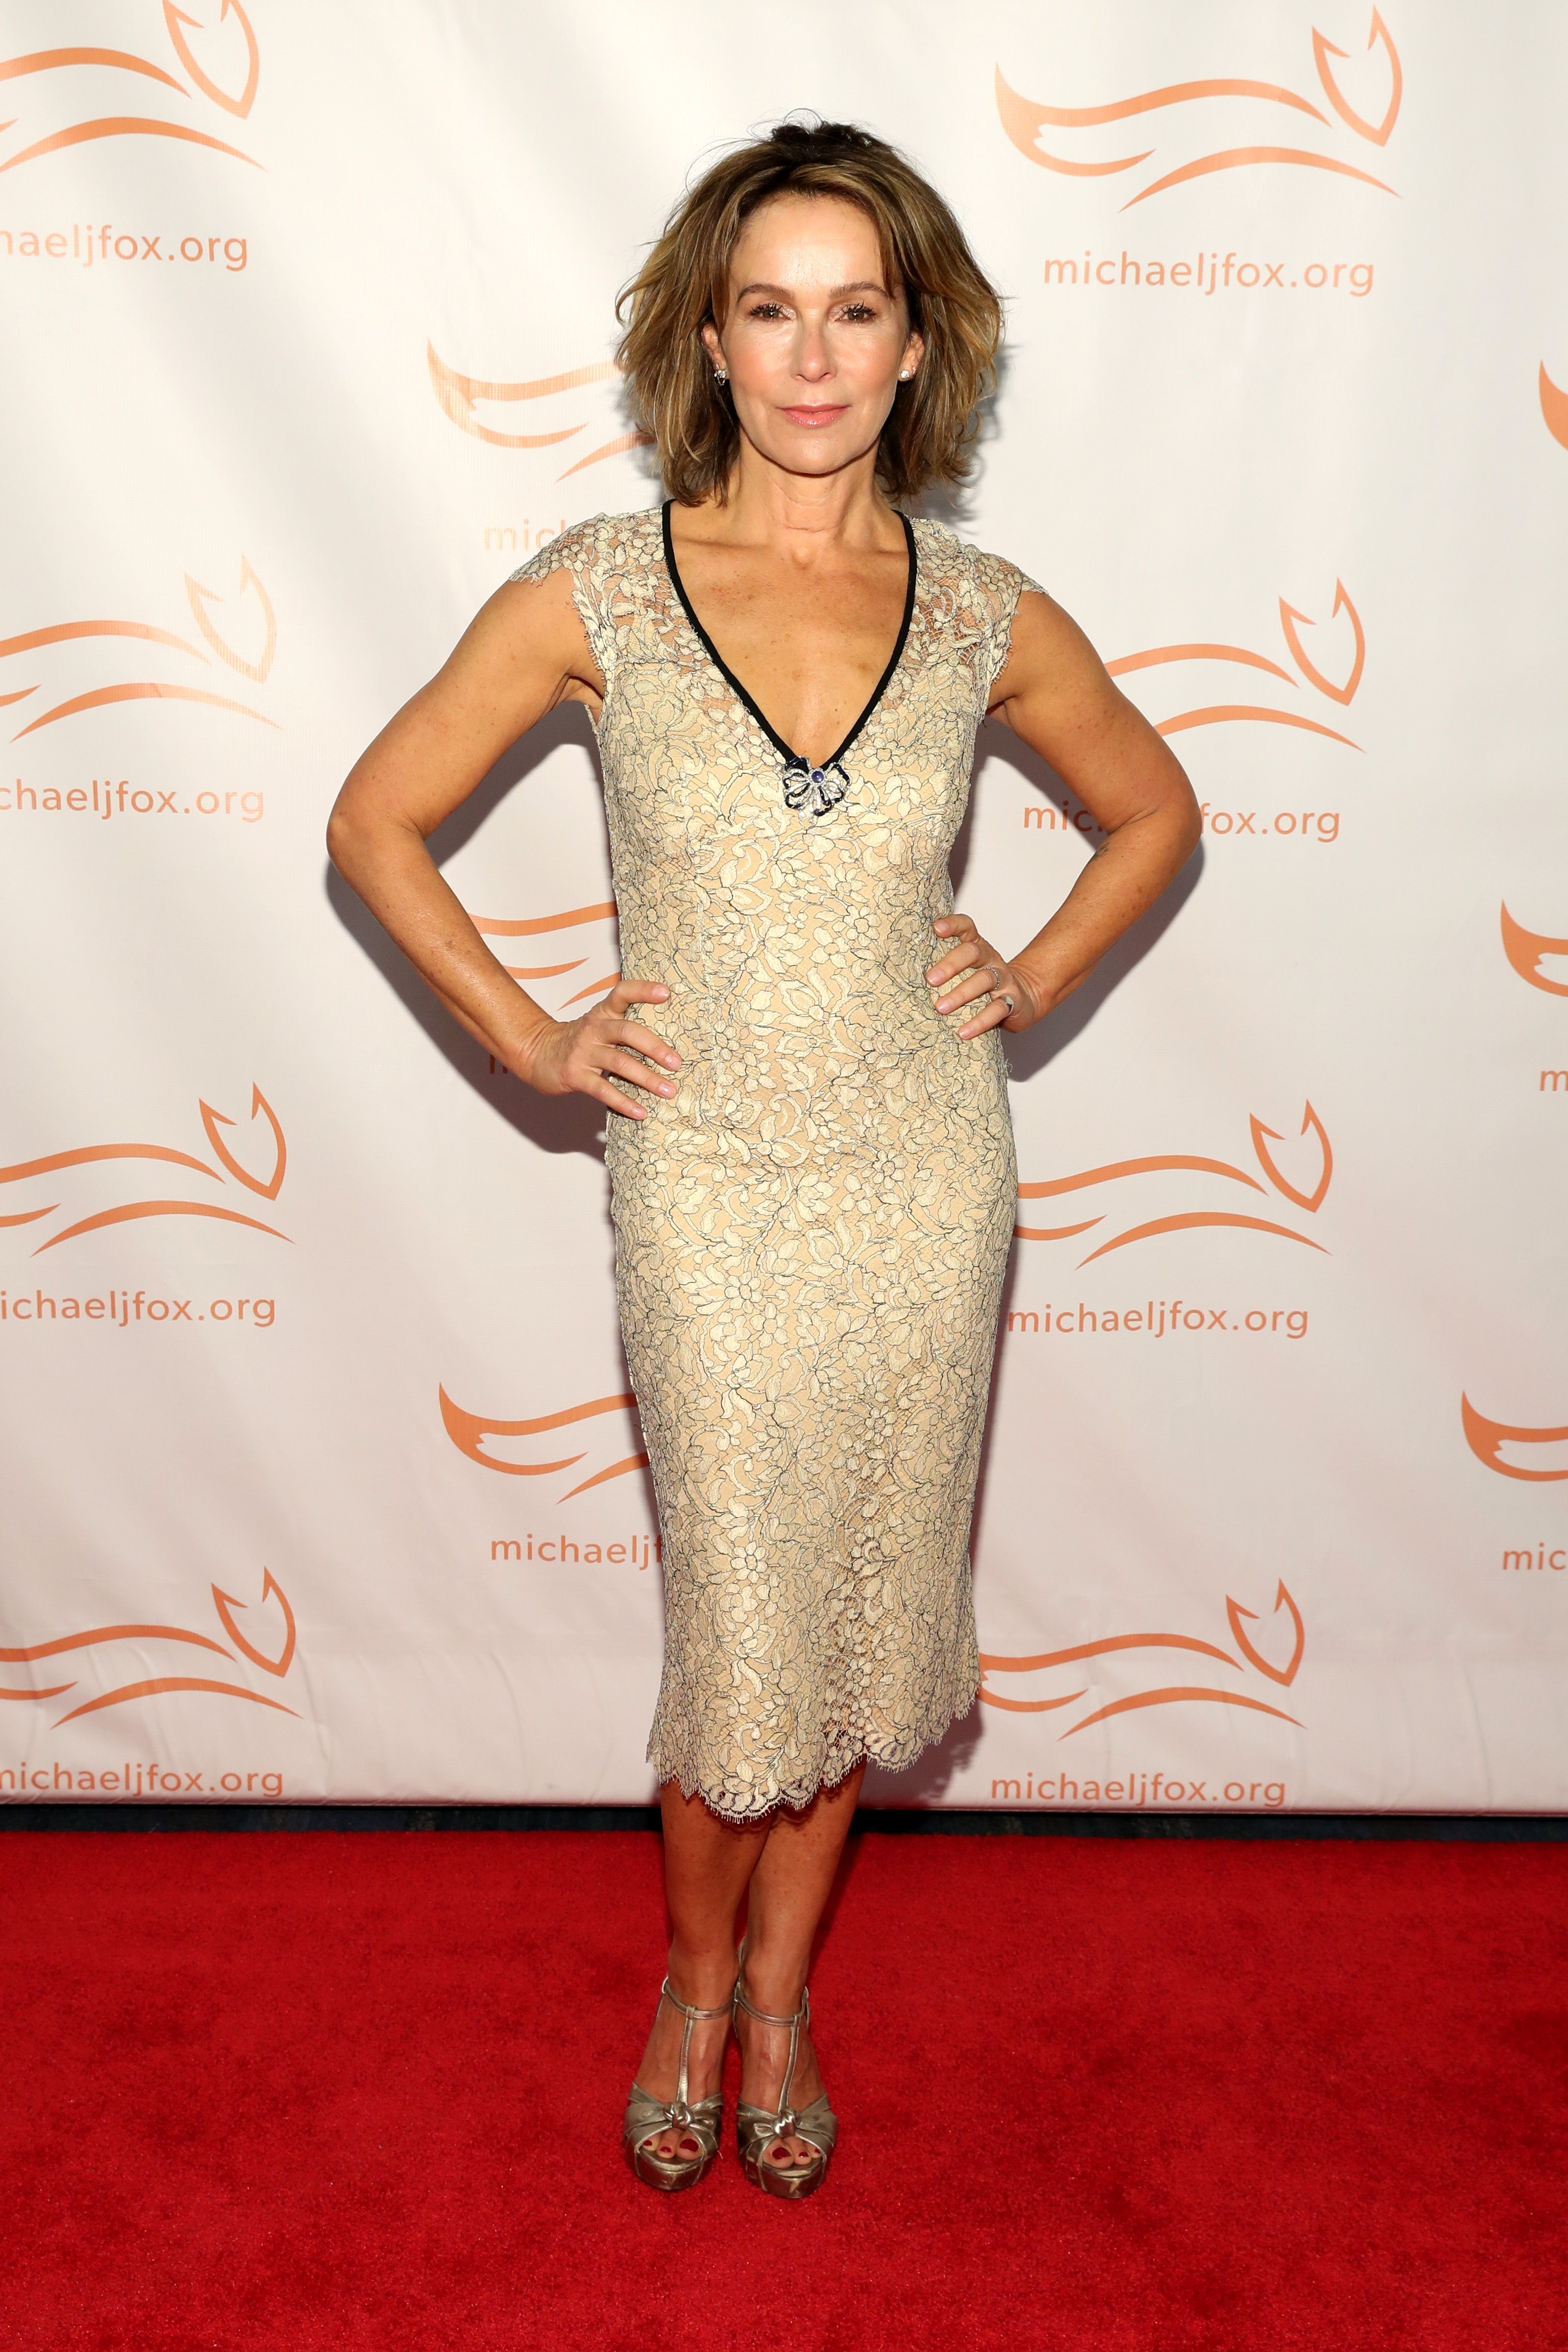 Jennifer Grey on the red carpet of A Funny Thing Happened On The Way To Cure Parkinson's benefitting The Michael J. Fox Foundation at the Hilton New York on November 10, 2018. | Source: Getty Images